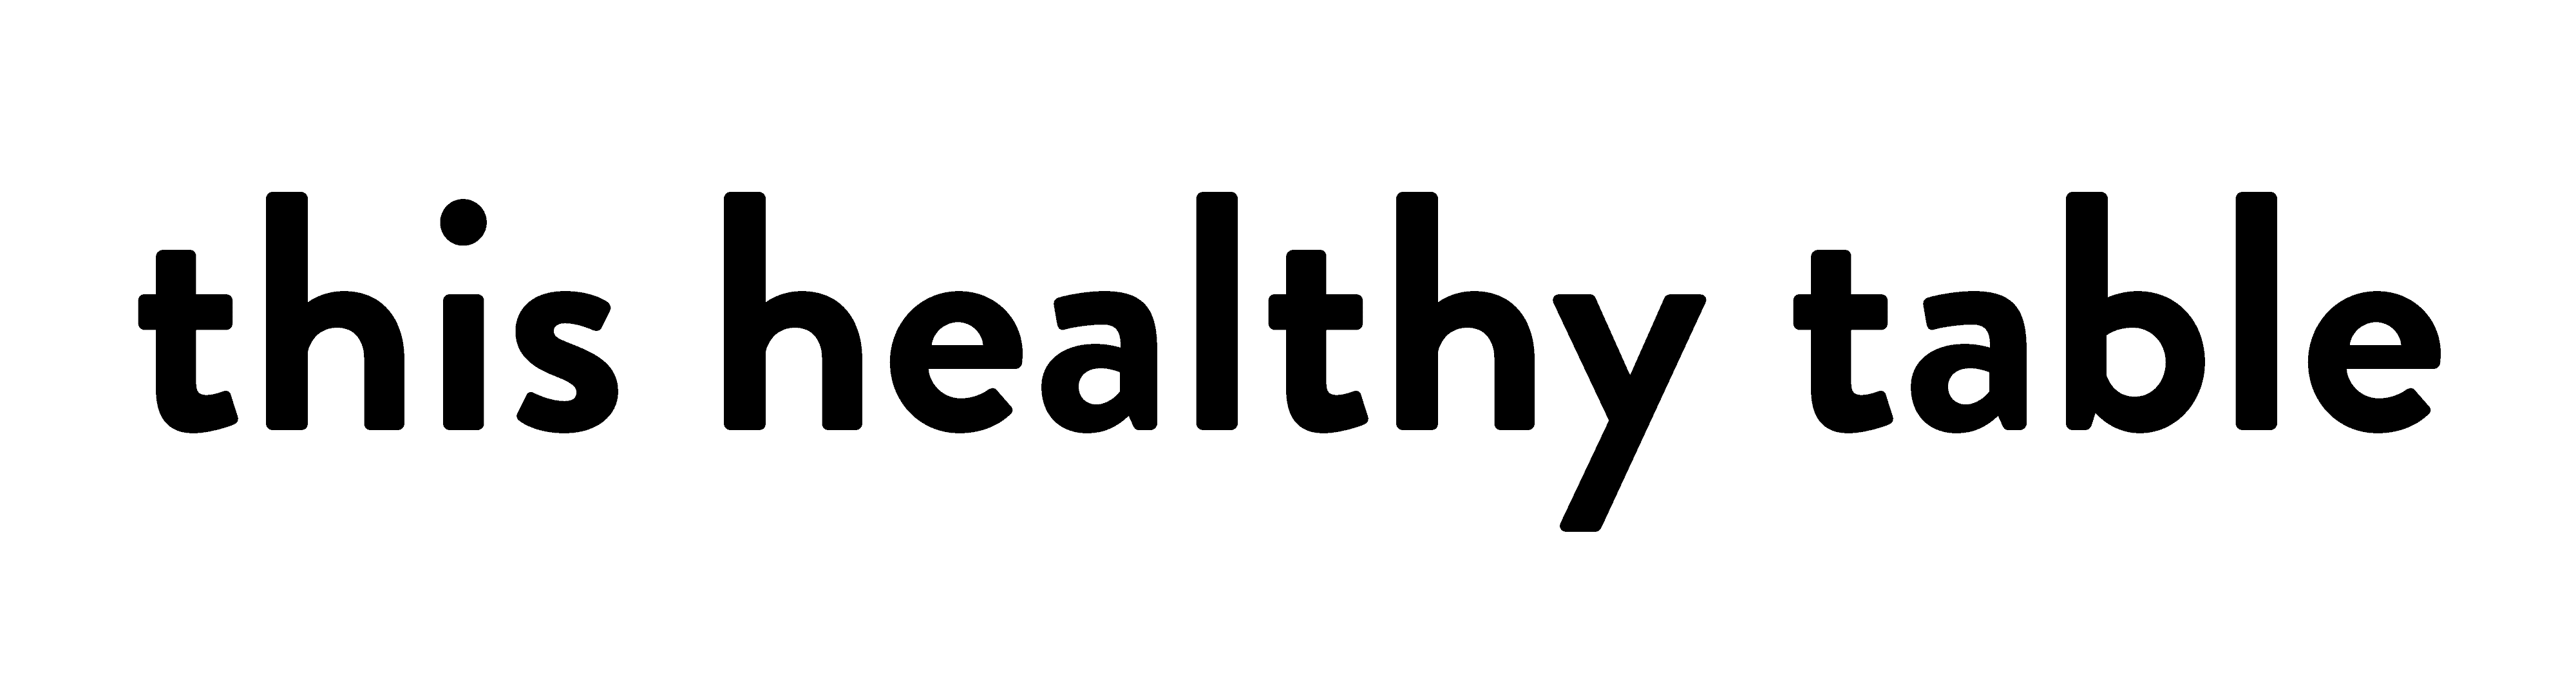 this healthy table